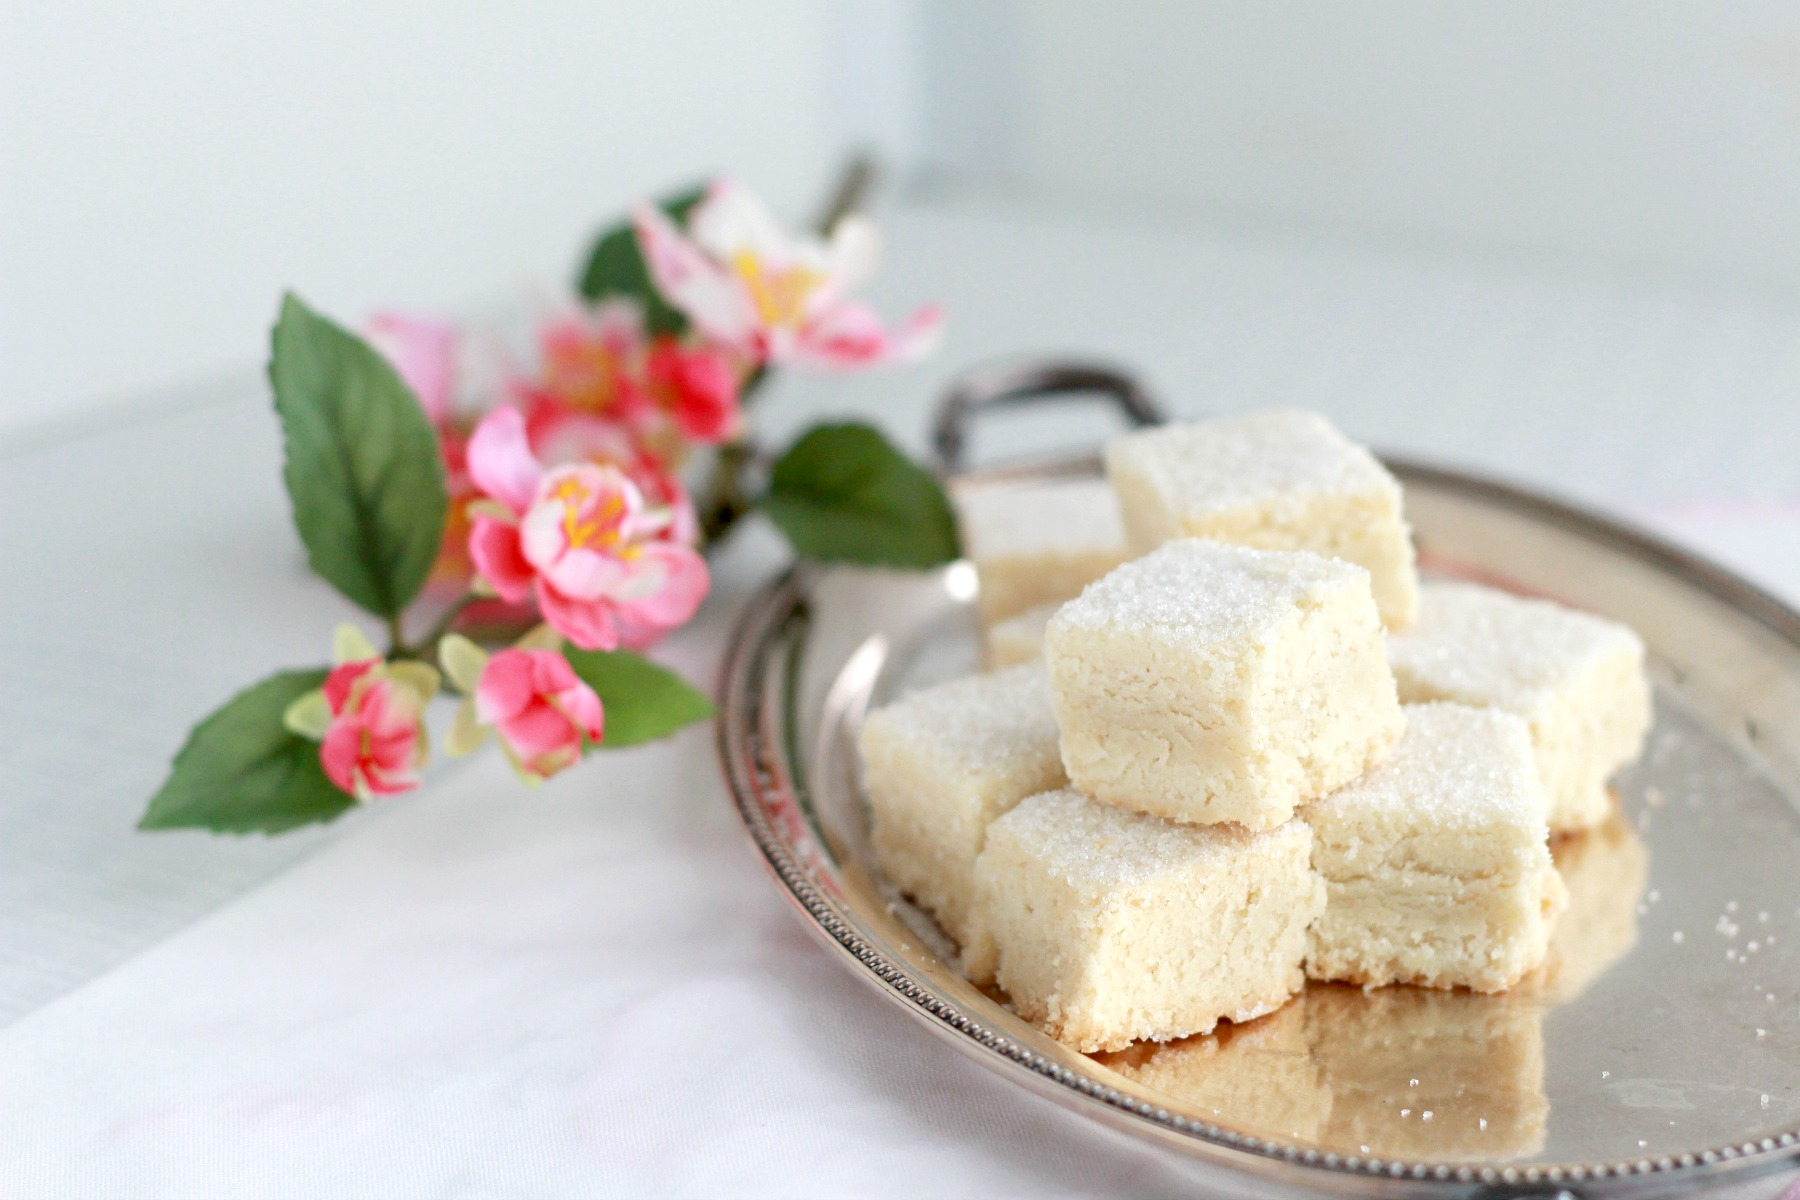 Call them biscuits or cookies, shortbread are delicious morsels of crumbly, buttery and delicate sweetness. Easy recipe for classic treats drizzled with or without lemon glaze.